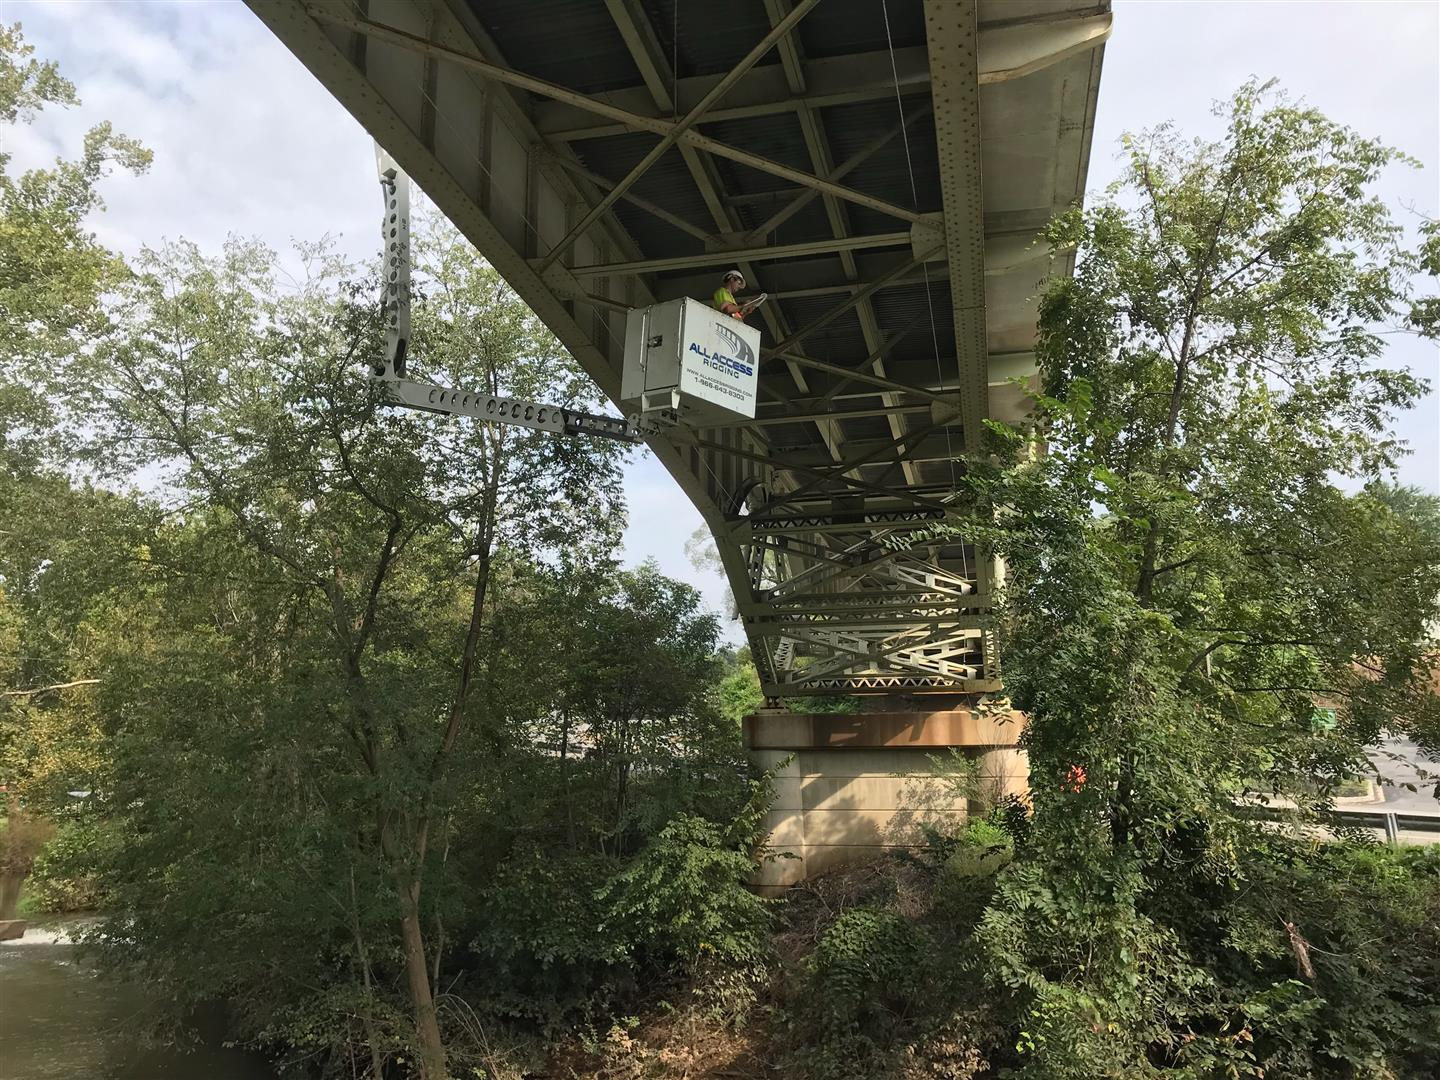 All Access Rigging Co and GPI working together 9/19/2018  on Bridge 2112400 US 522 OVER MD 144 TONOLOWAY CREEK   -      ...